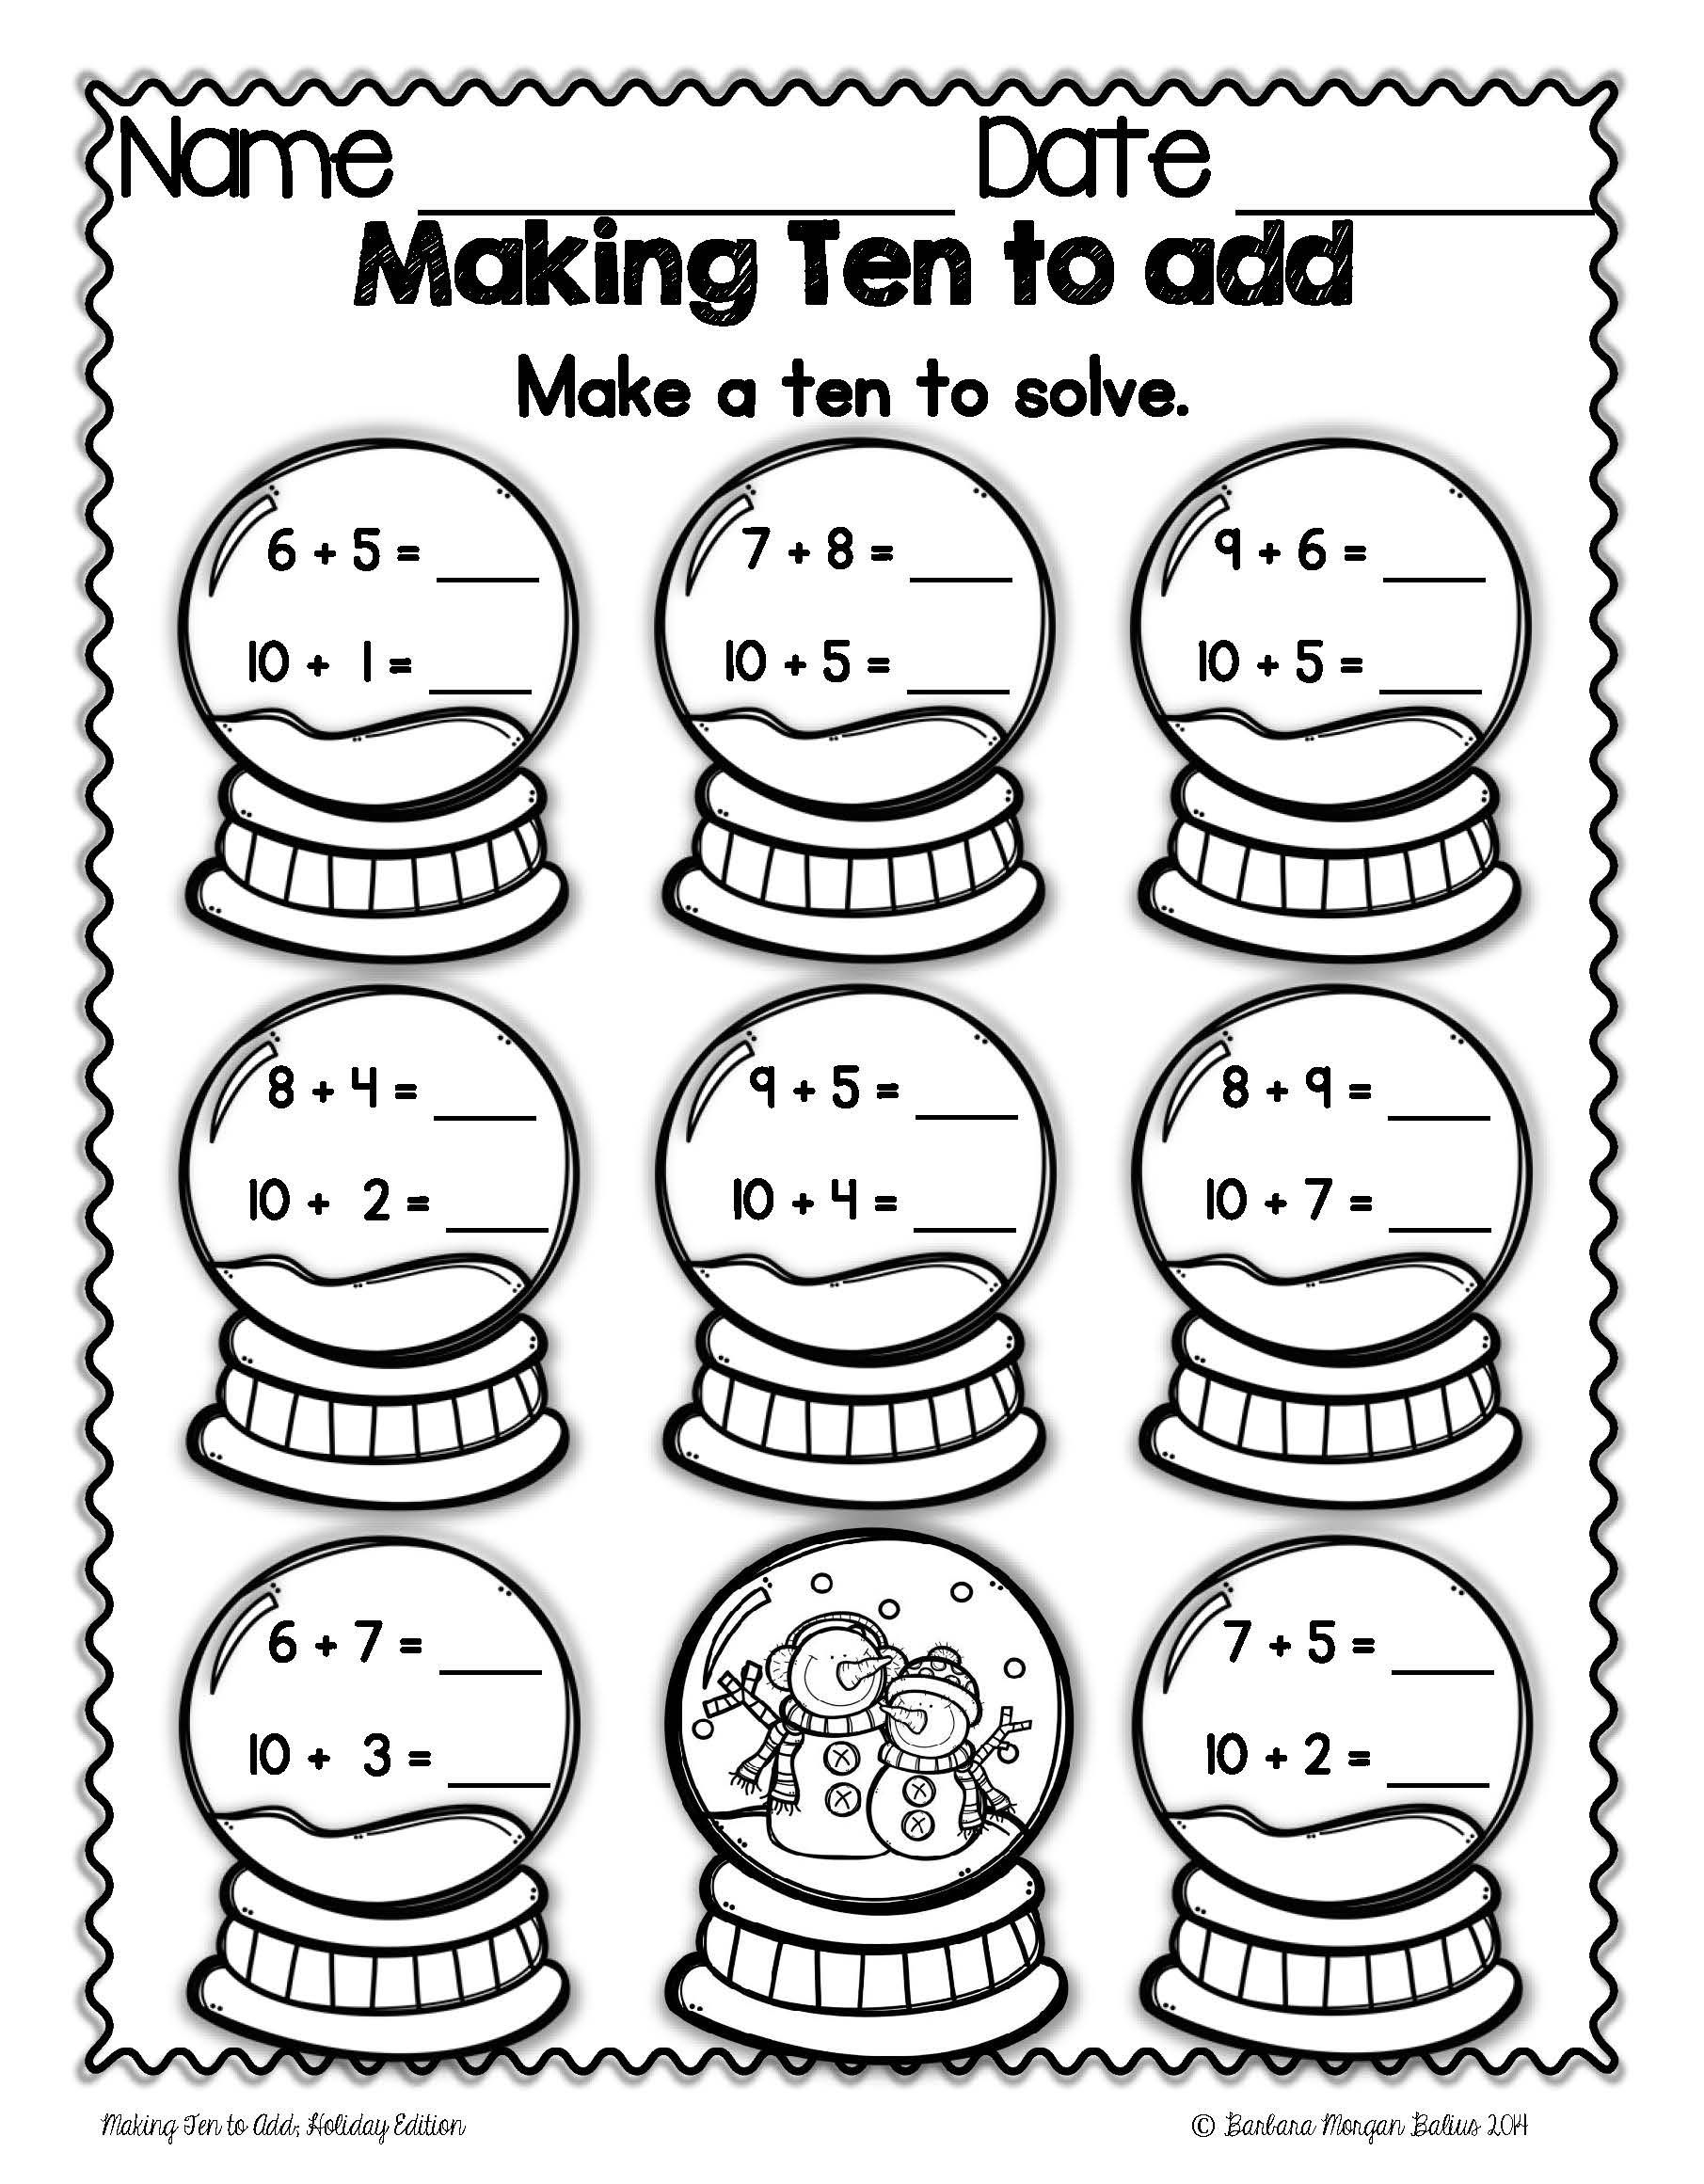 Worksheet ~ Fun Printable Activities For 2Nd Graders